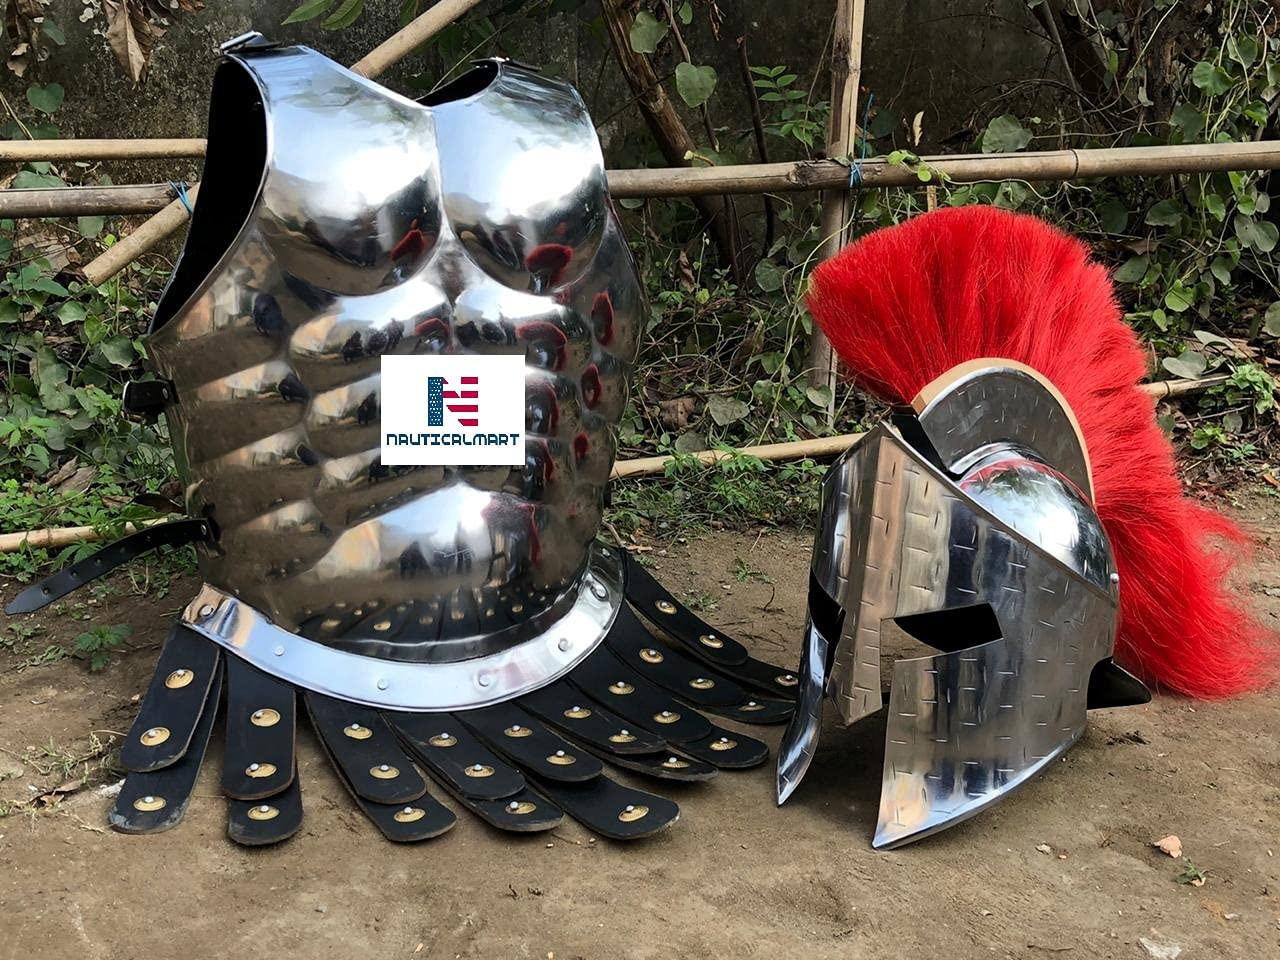 Nautical-Mart 300 Spartan Roman Breastplat Armor Cheap mail order specialty Max 47% OFF store Muscle Medieval